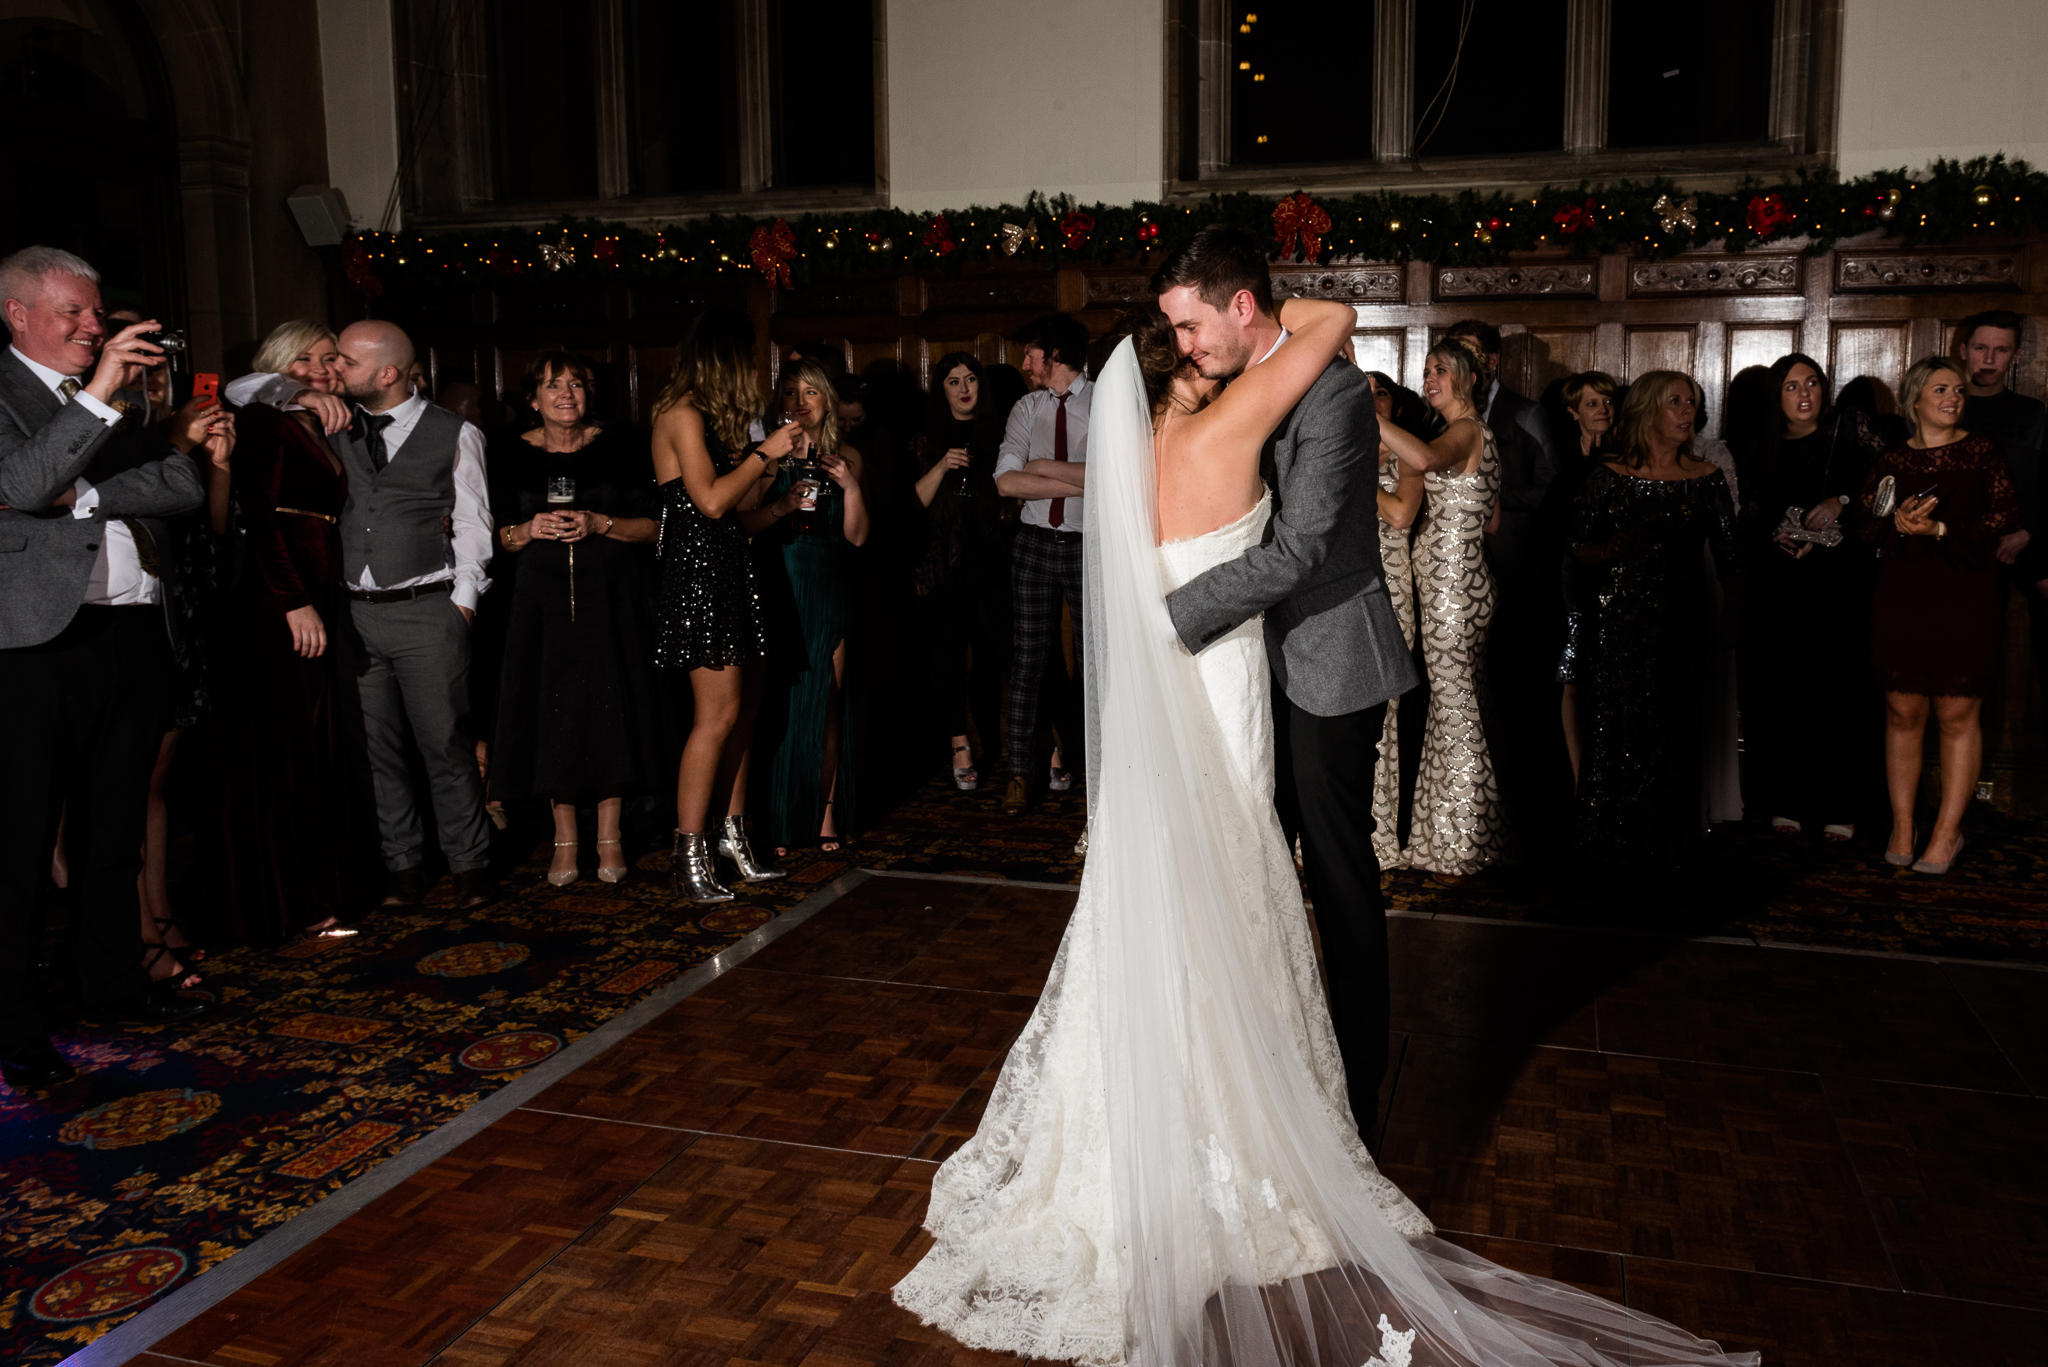 Staffordshire Winter Christmas Wedding at Holy Trinity Church and Keele Hall - Documentary Photography by Jenny Harper-43.jpg